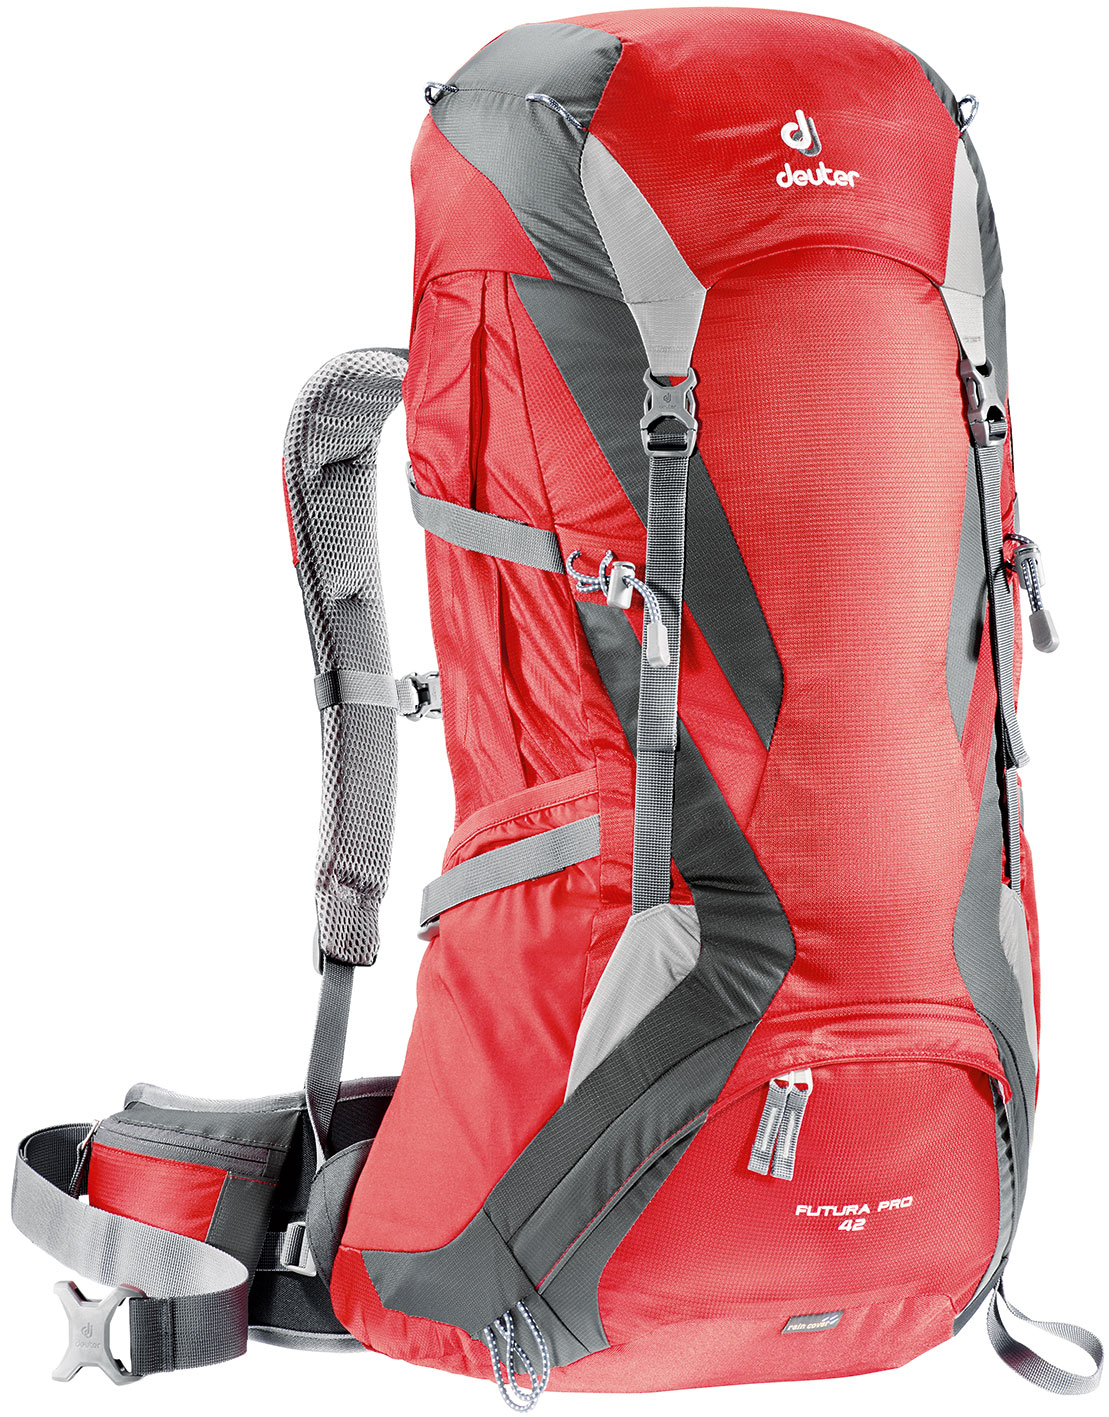 Deuter Futura Pro 42 fire-granite-30